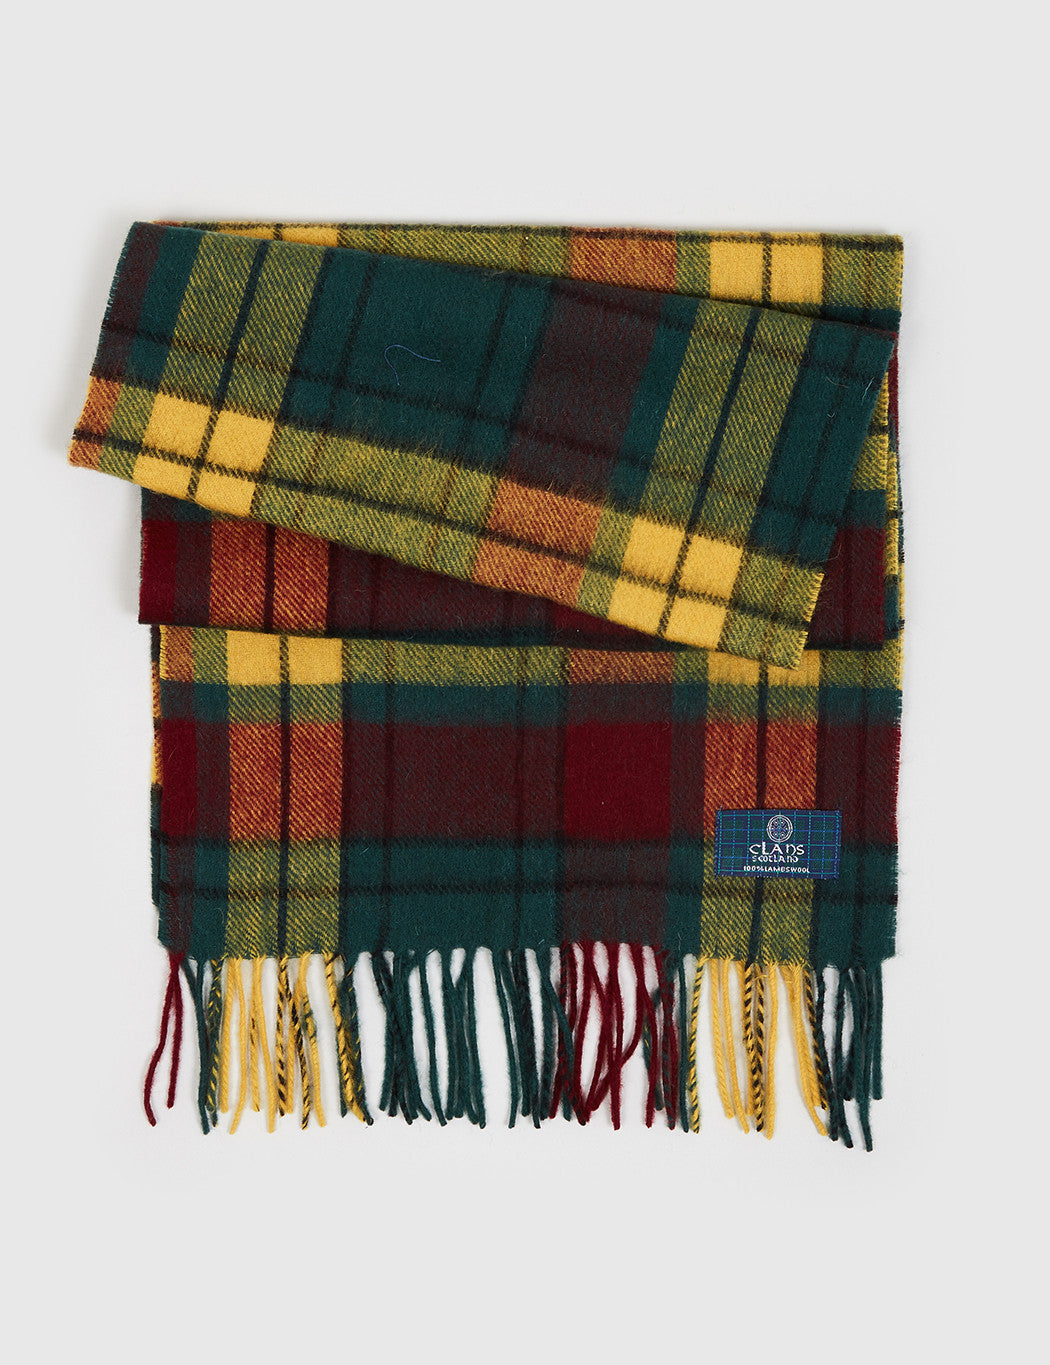 Clans of Scotland Lambs Wool Scarf - MacMillan Old